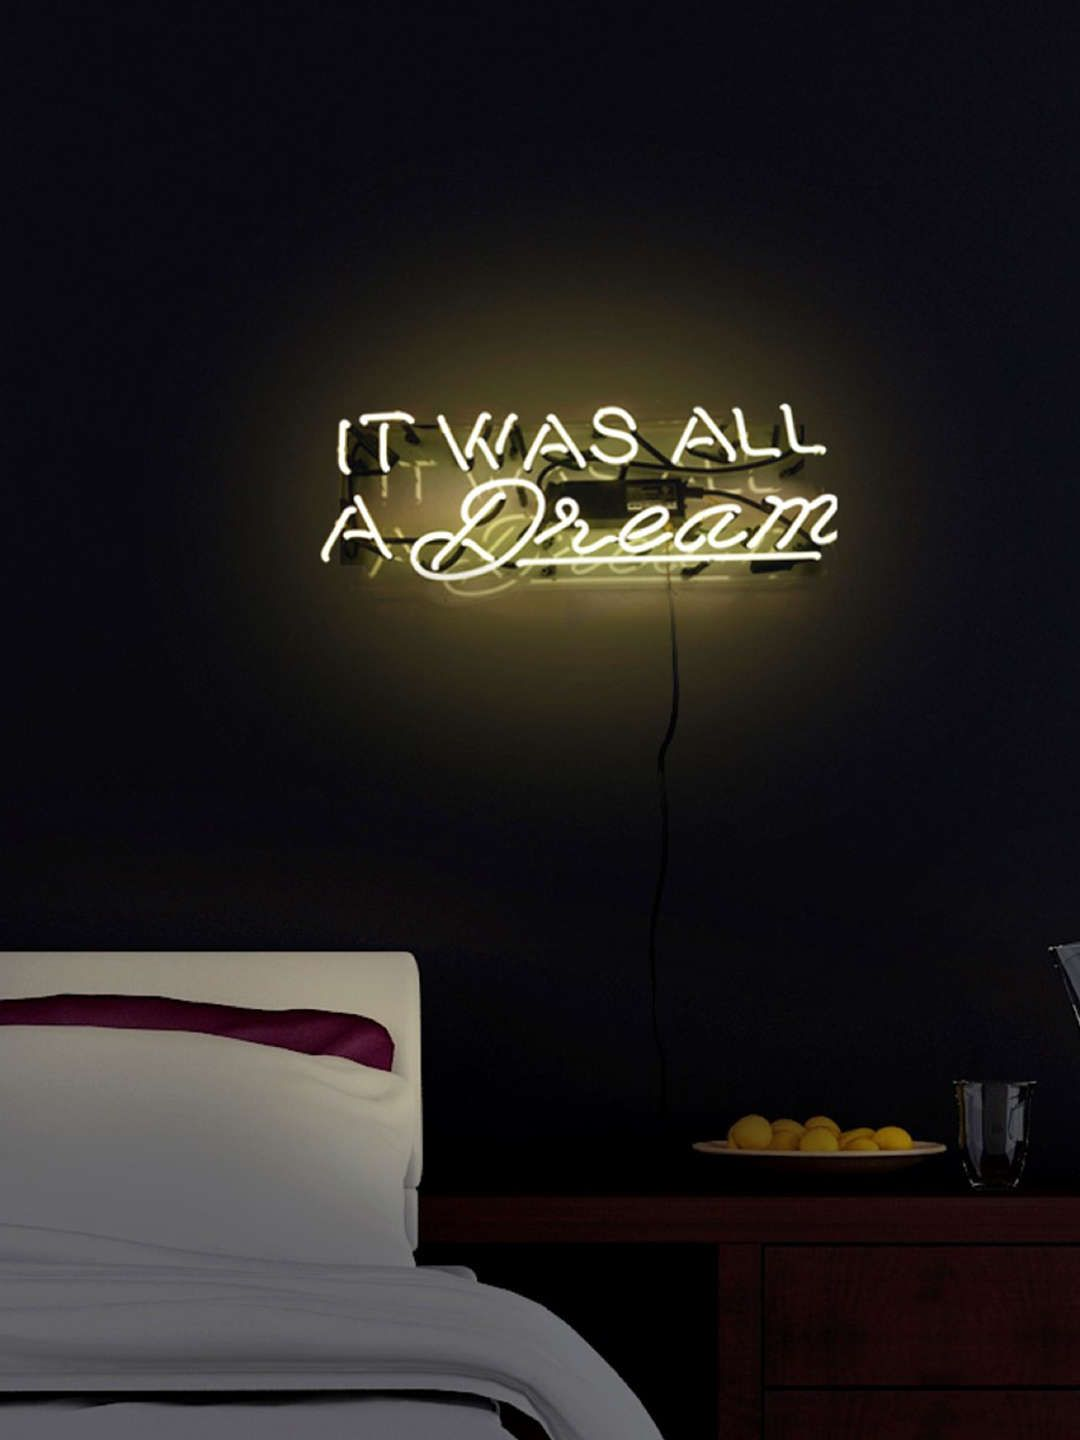 It Was All A Dream Neon Sign Glamorous It Was All A Dream Neon Sign  Lights Inspiration Design